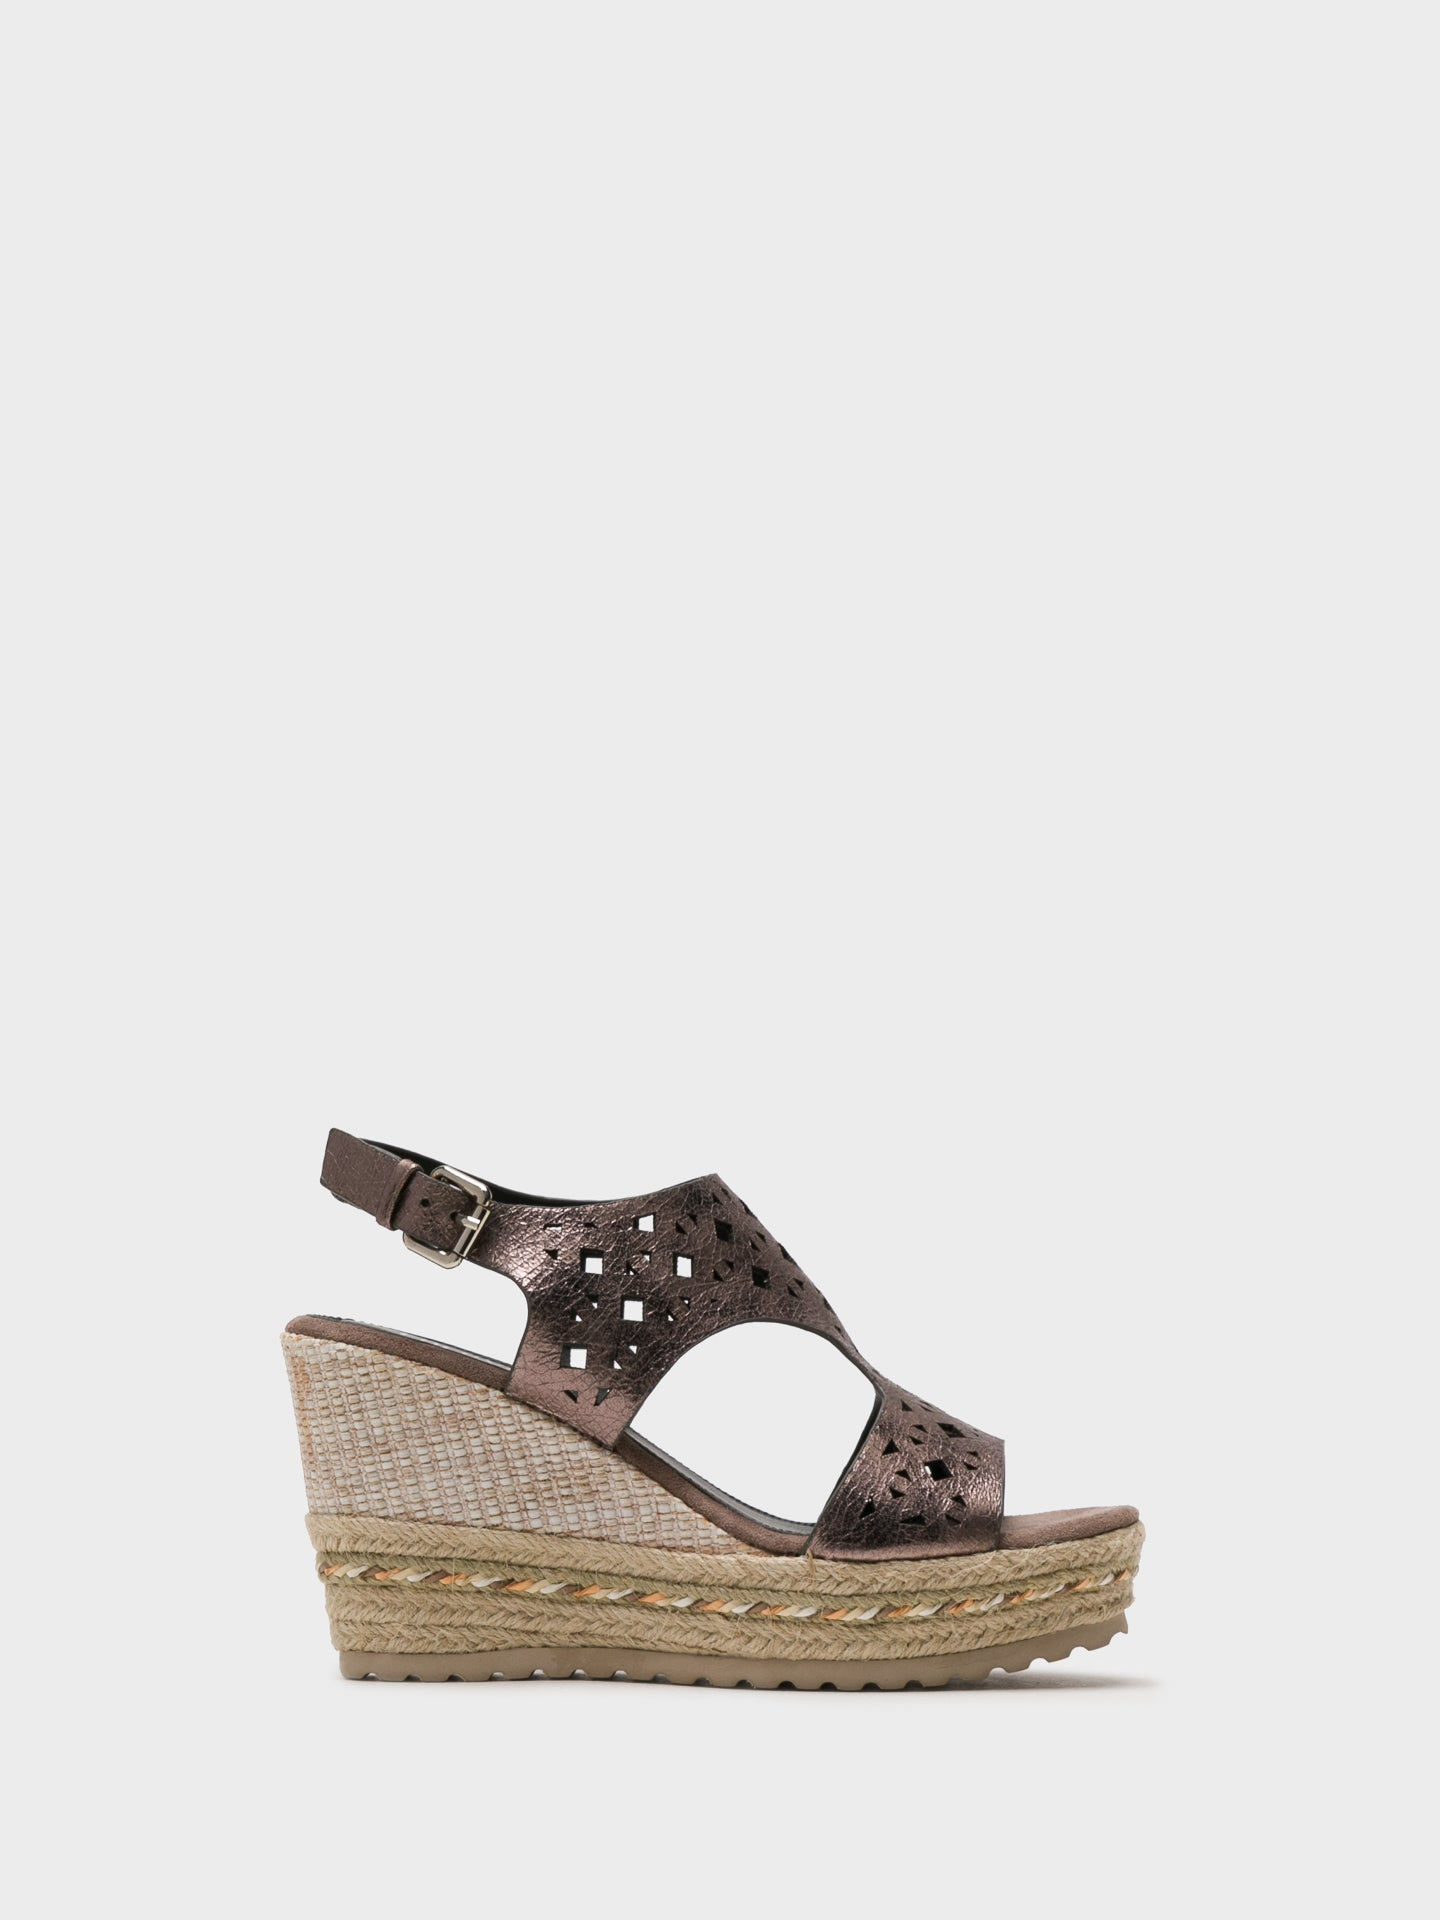 Foreva Silver Wedge Sandals